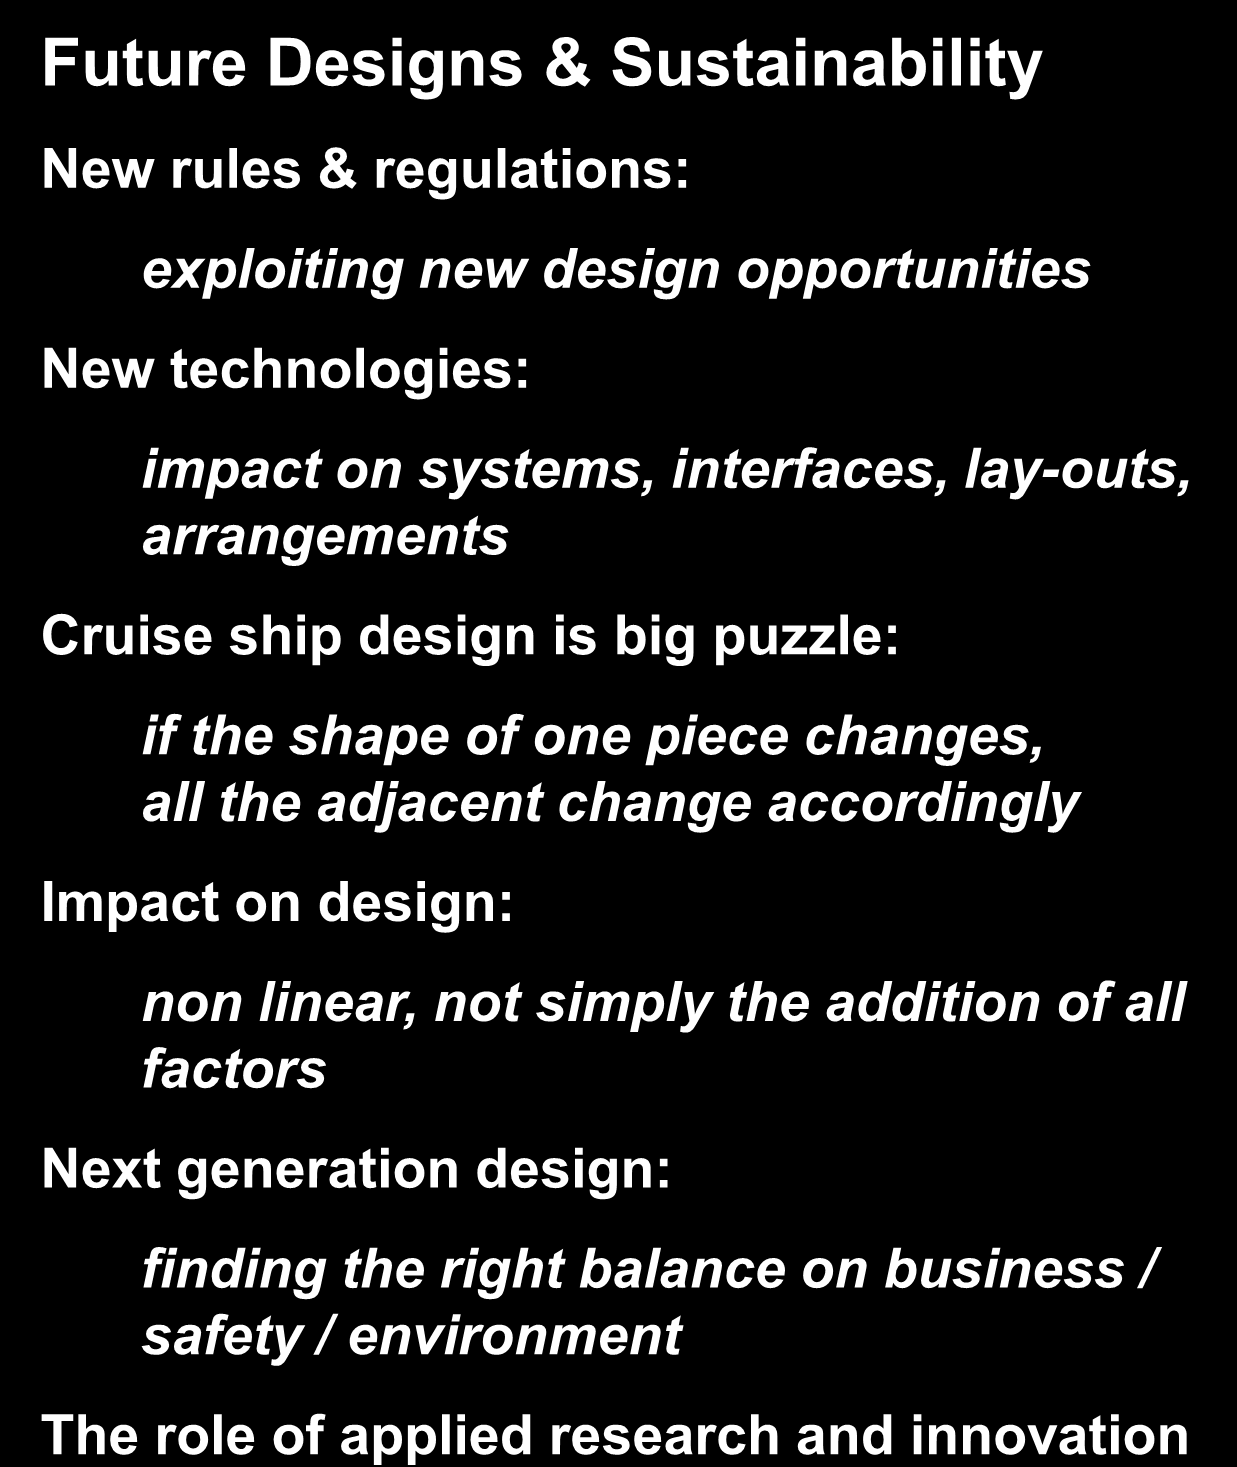 changes, all the adjacent change accordingly Impact on design: non linear, not simply the addition of all factors